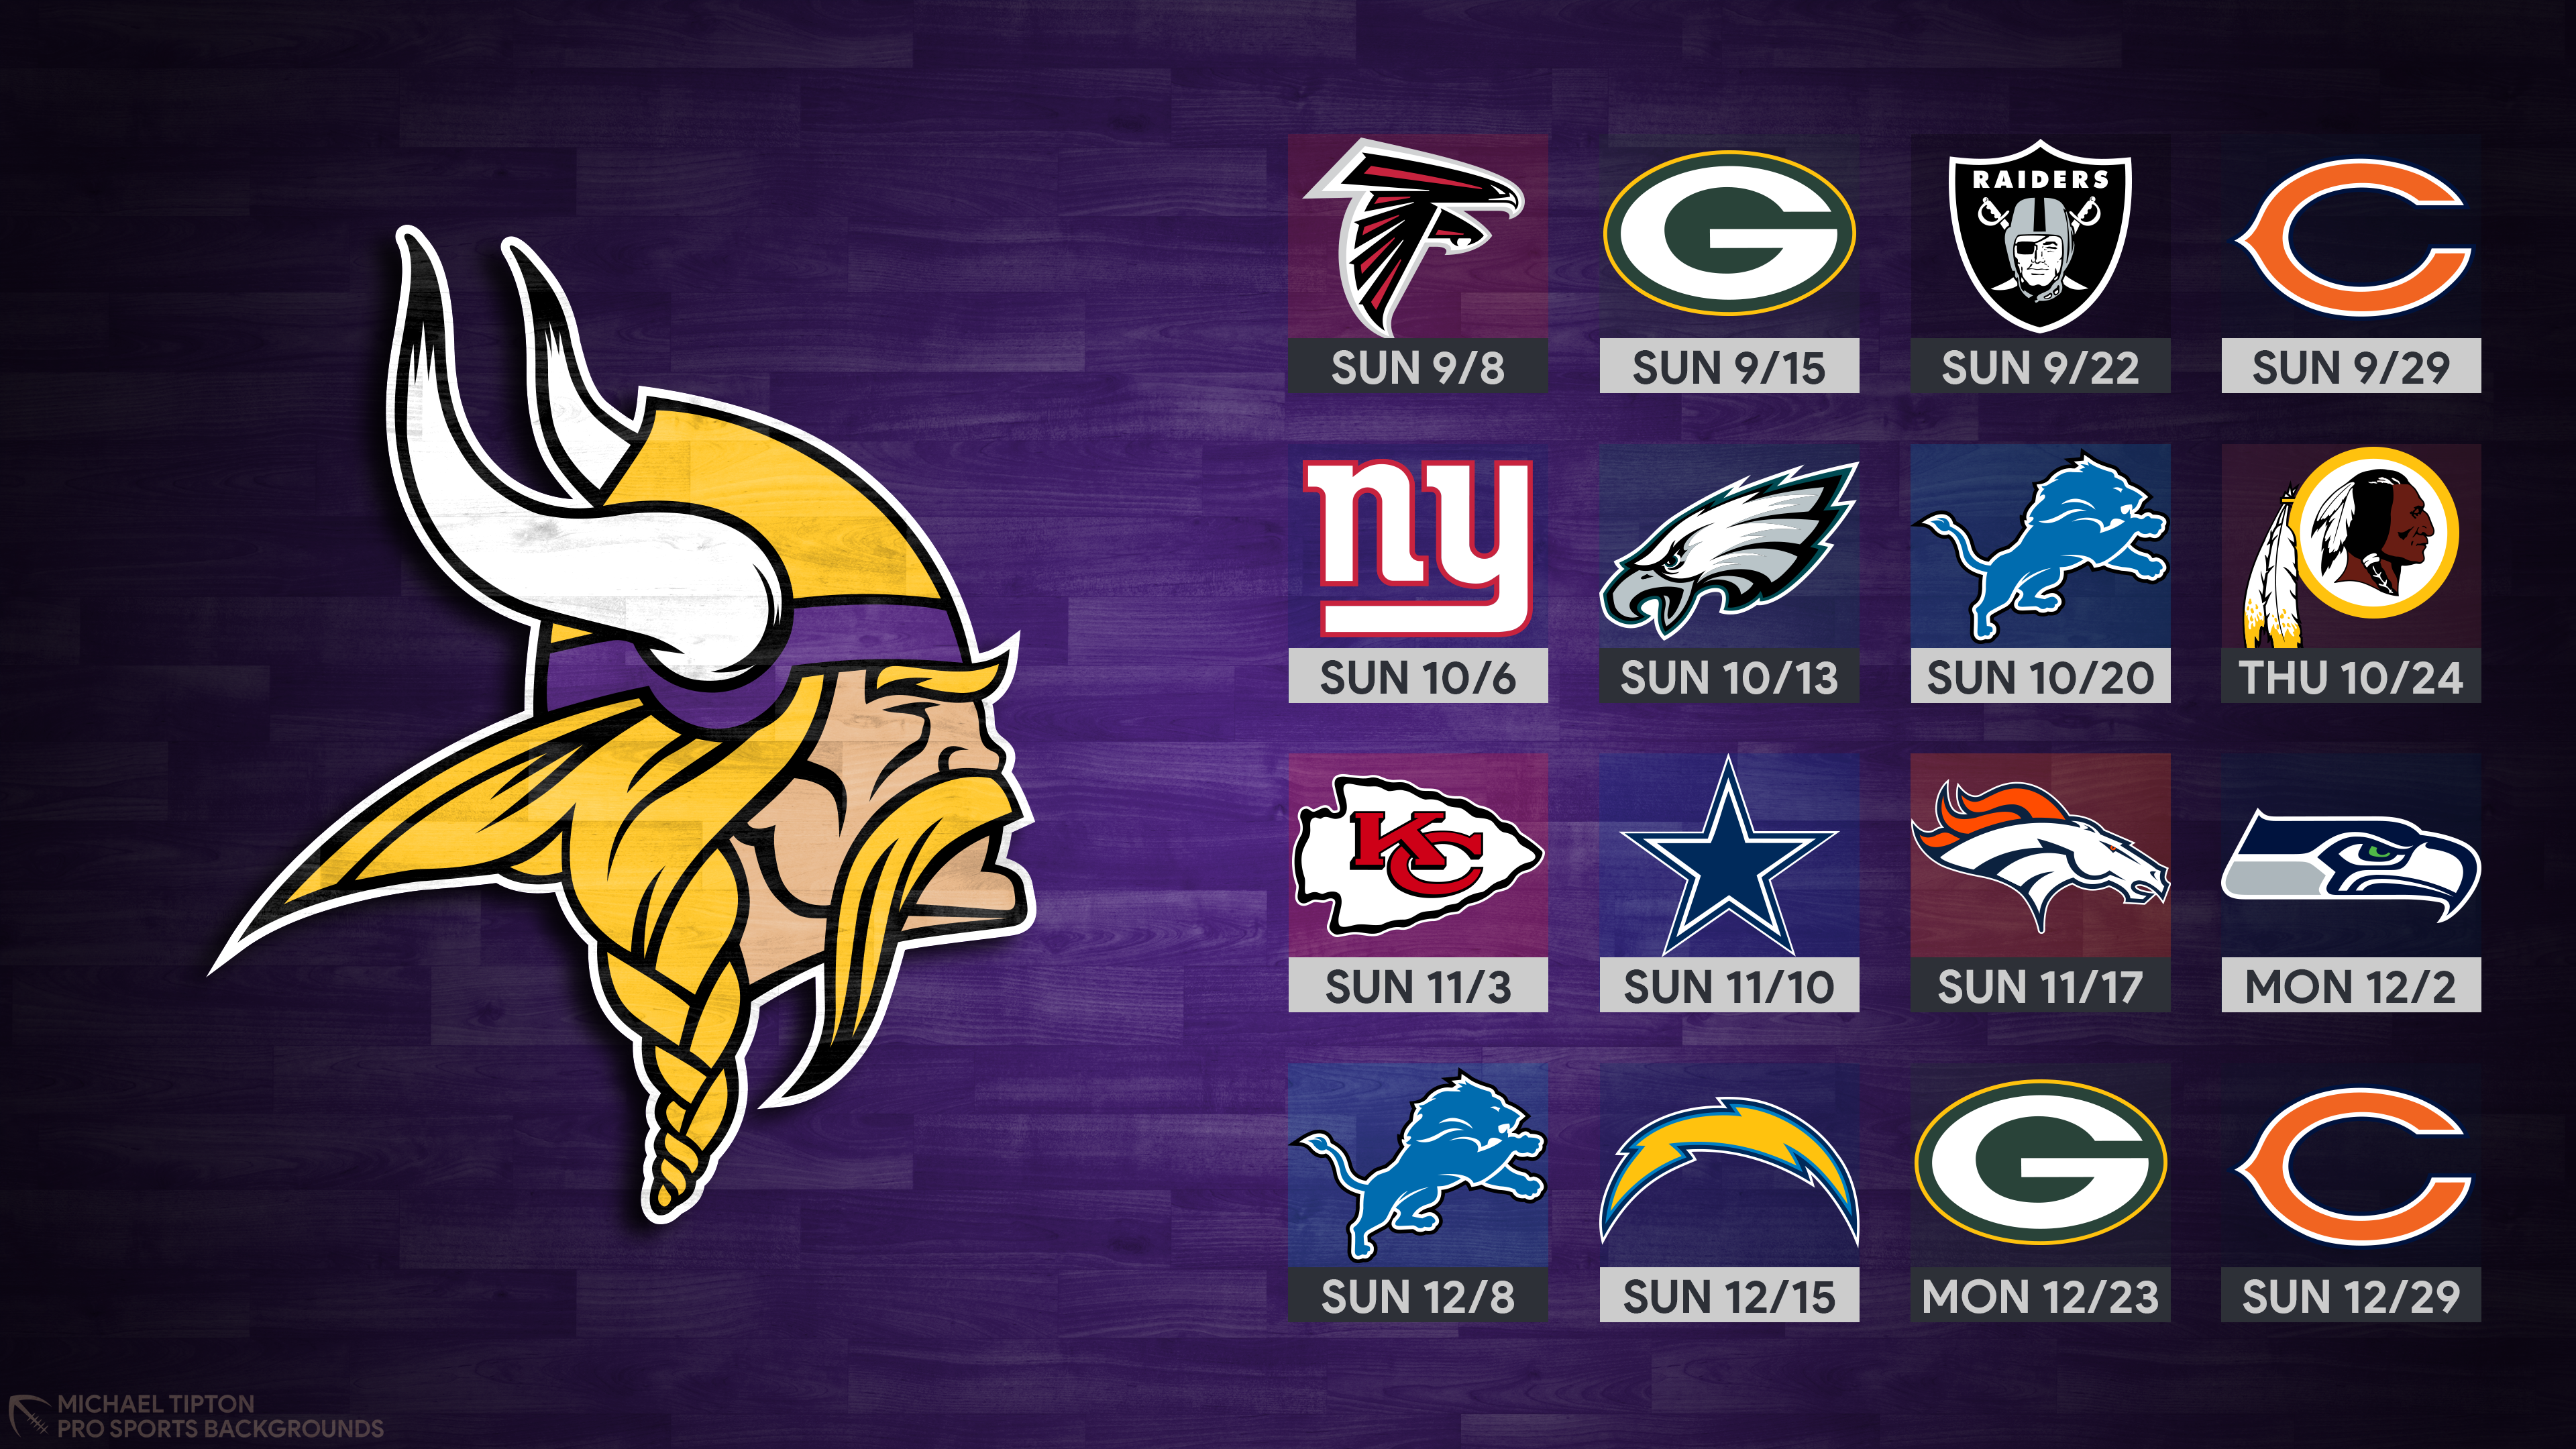 Minnesota Vikings Screensaver Posted By Samantha Johnson